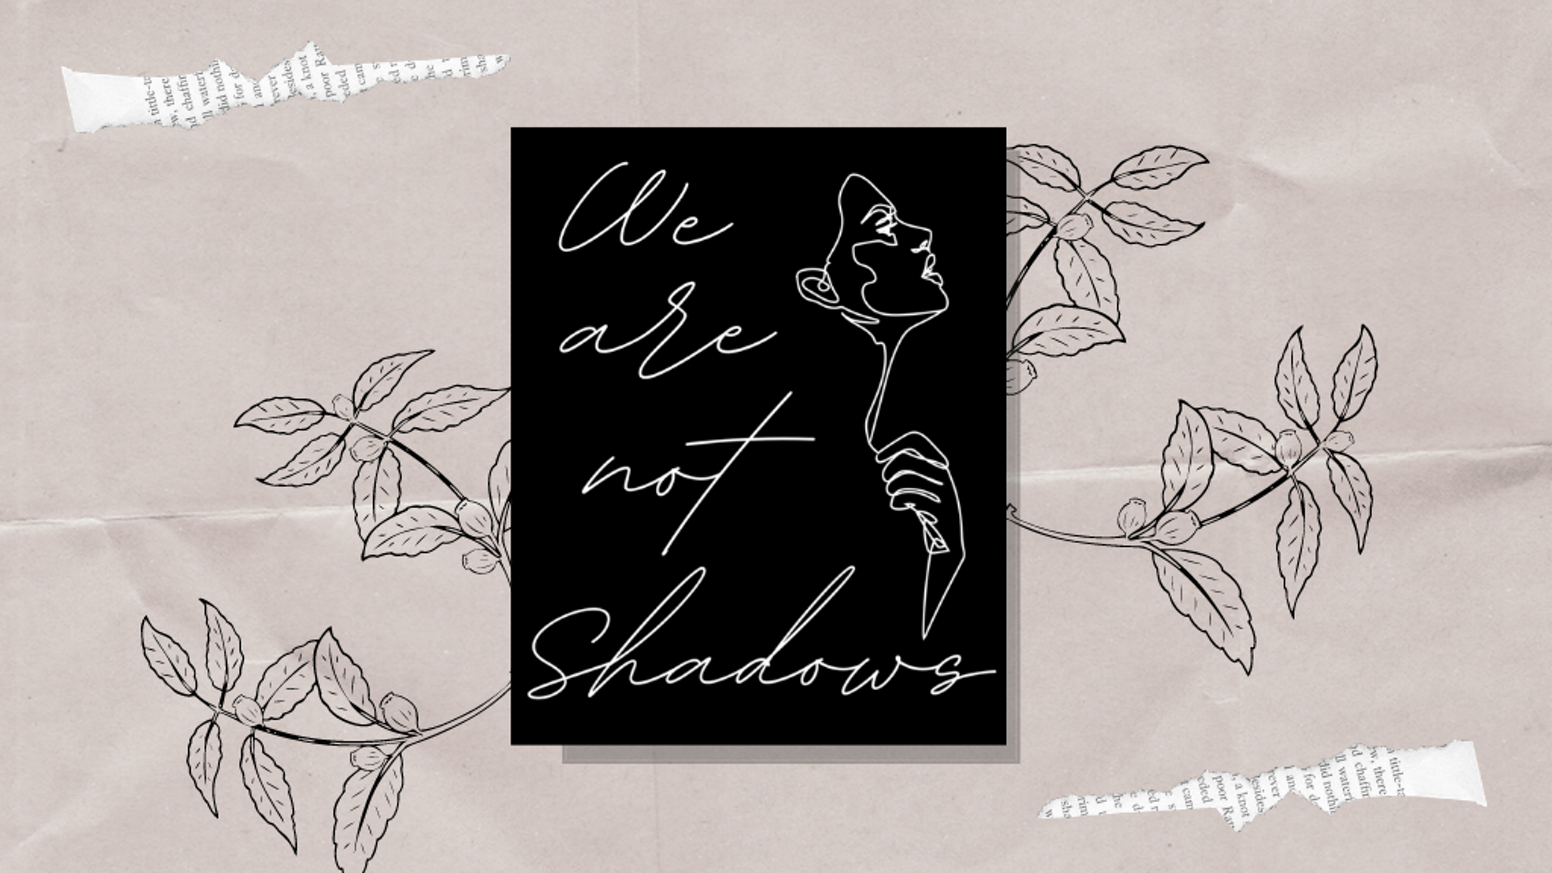 We Are Not Shadows shares the powerful stories of women speaking up and speaking out about their personal experiences.